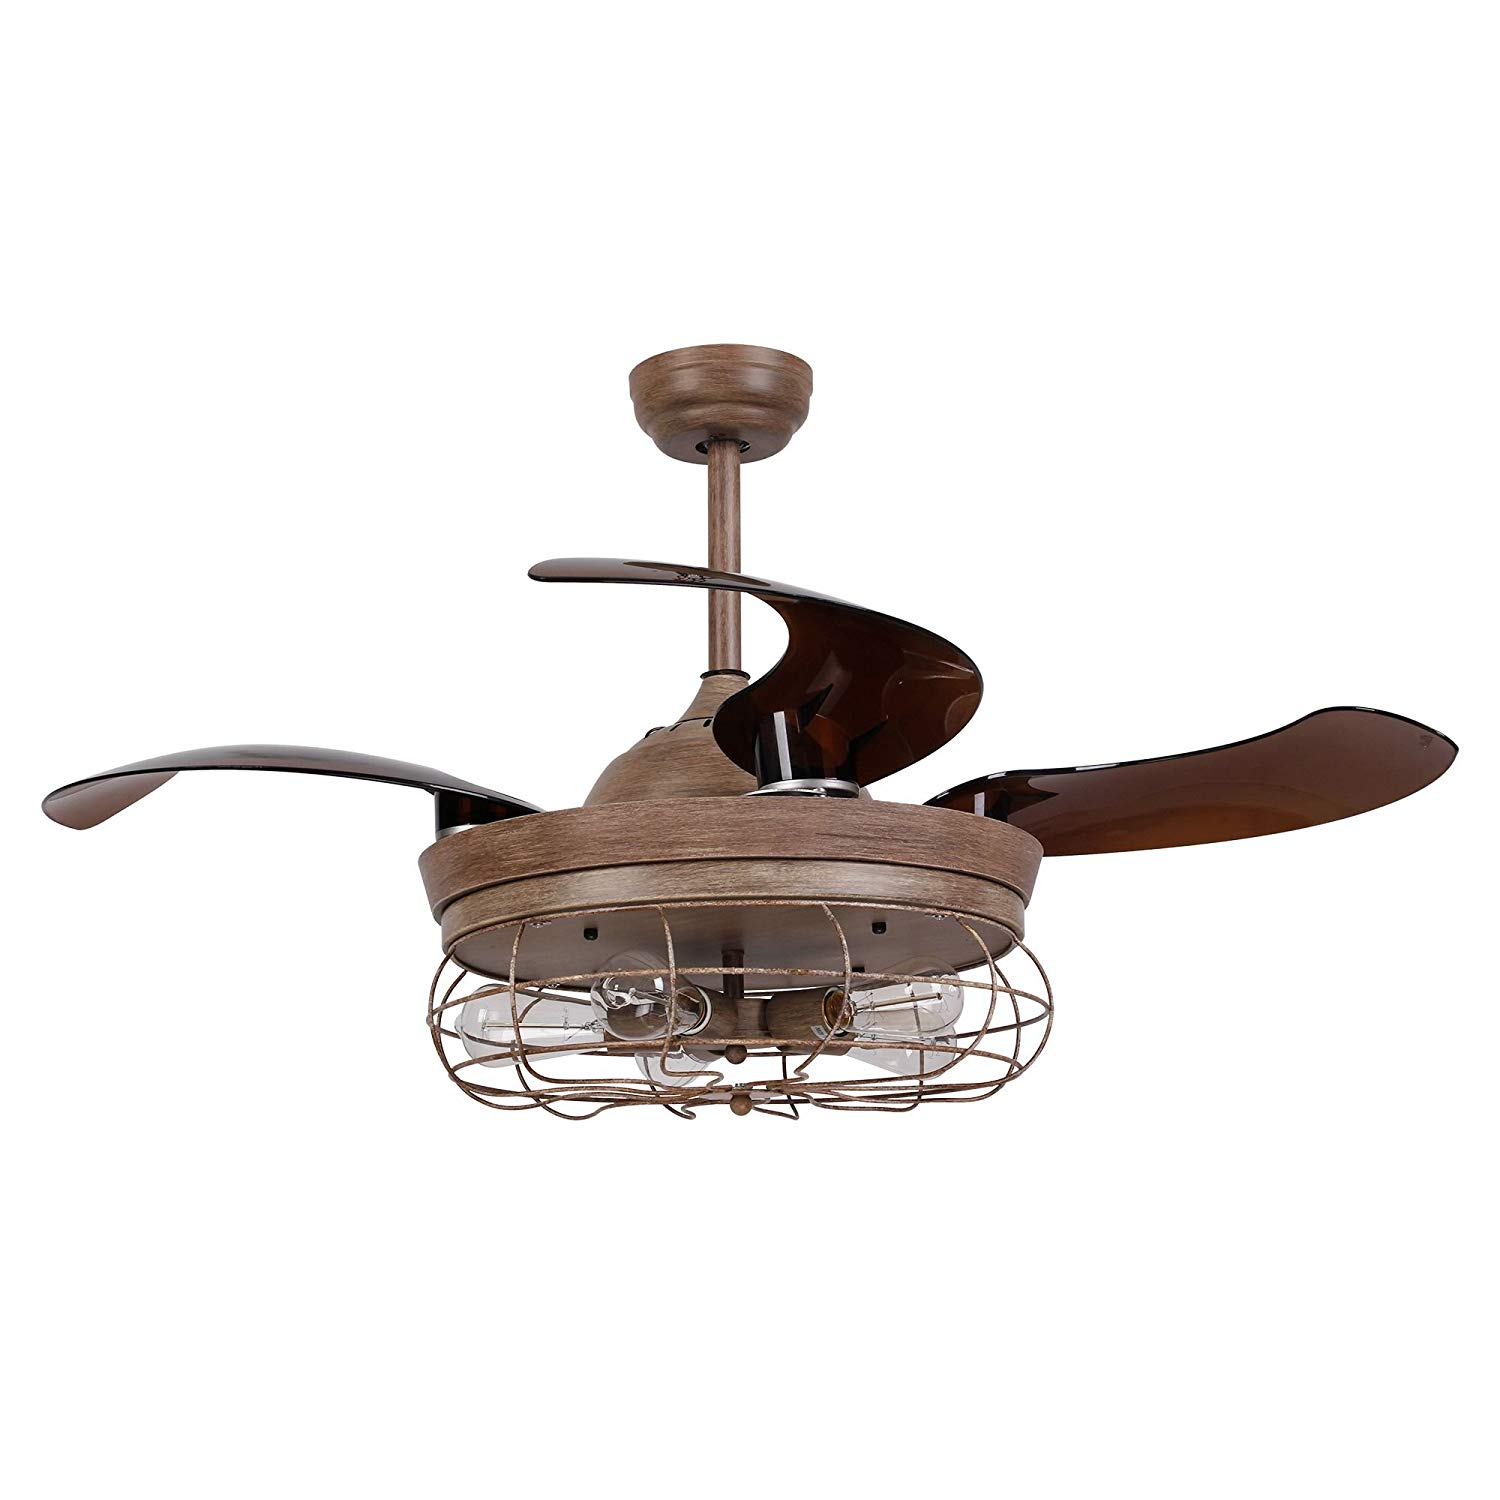 Ceiling Fan With Light 46 Inch Retractable Blades Vintage Cage Chandelier Remote Control 5 Edison Bulbs Needed Not